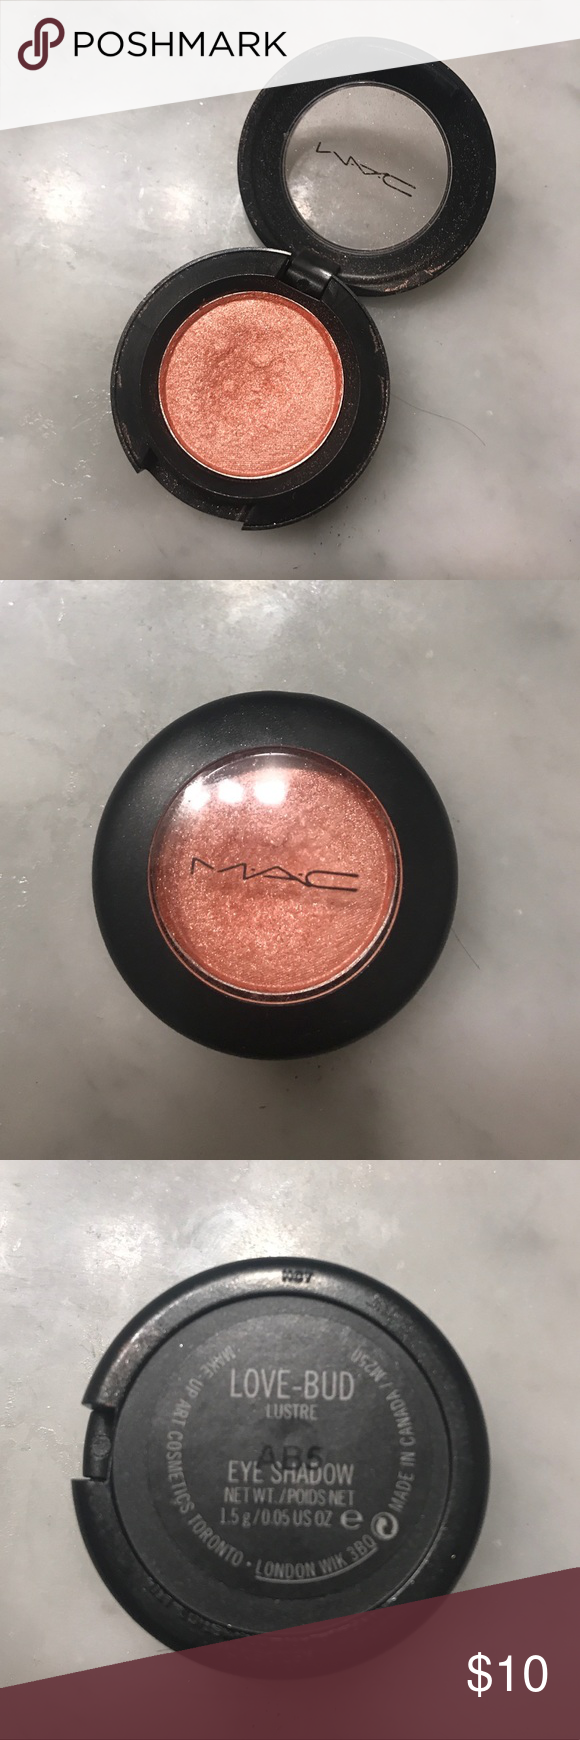 limited edition mac eyeshadow with images mac